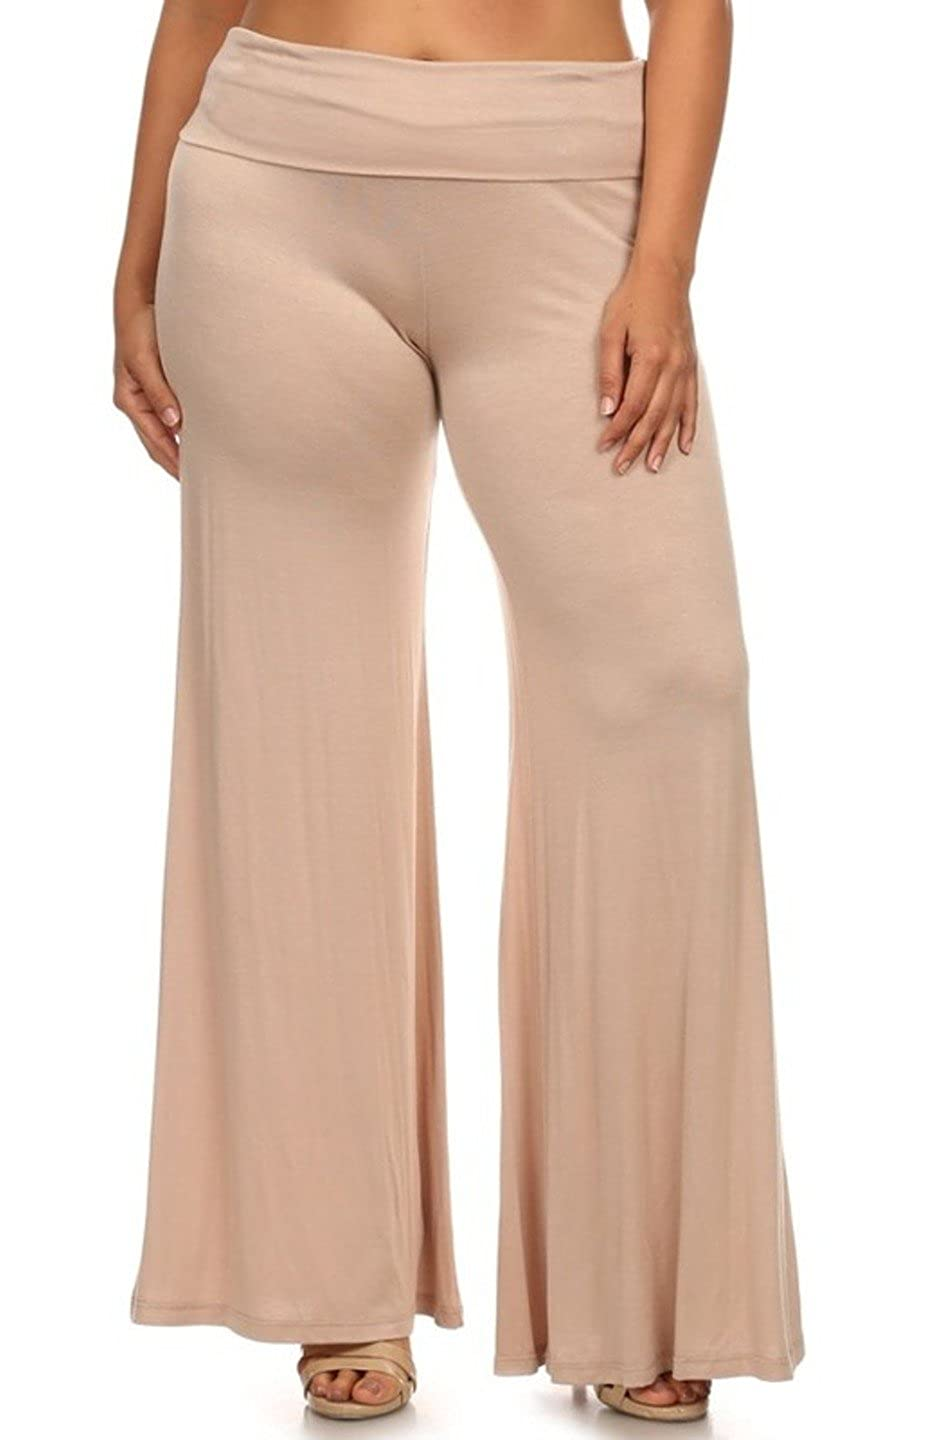 570e7ffc967 Amazon.com  2LUV Plus Women s Printed High Waisted Wide Leg Palazzo Pants   Clothing